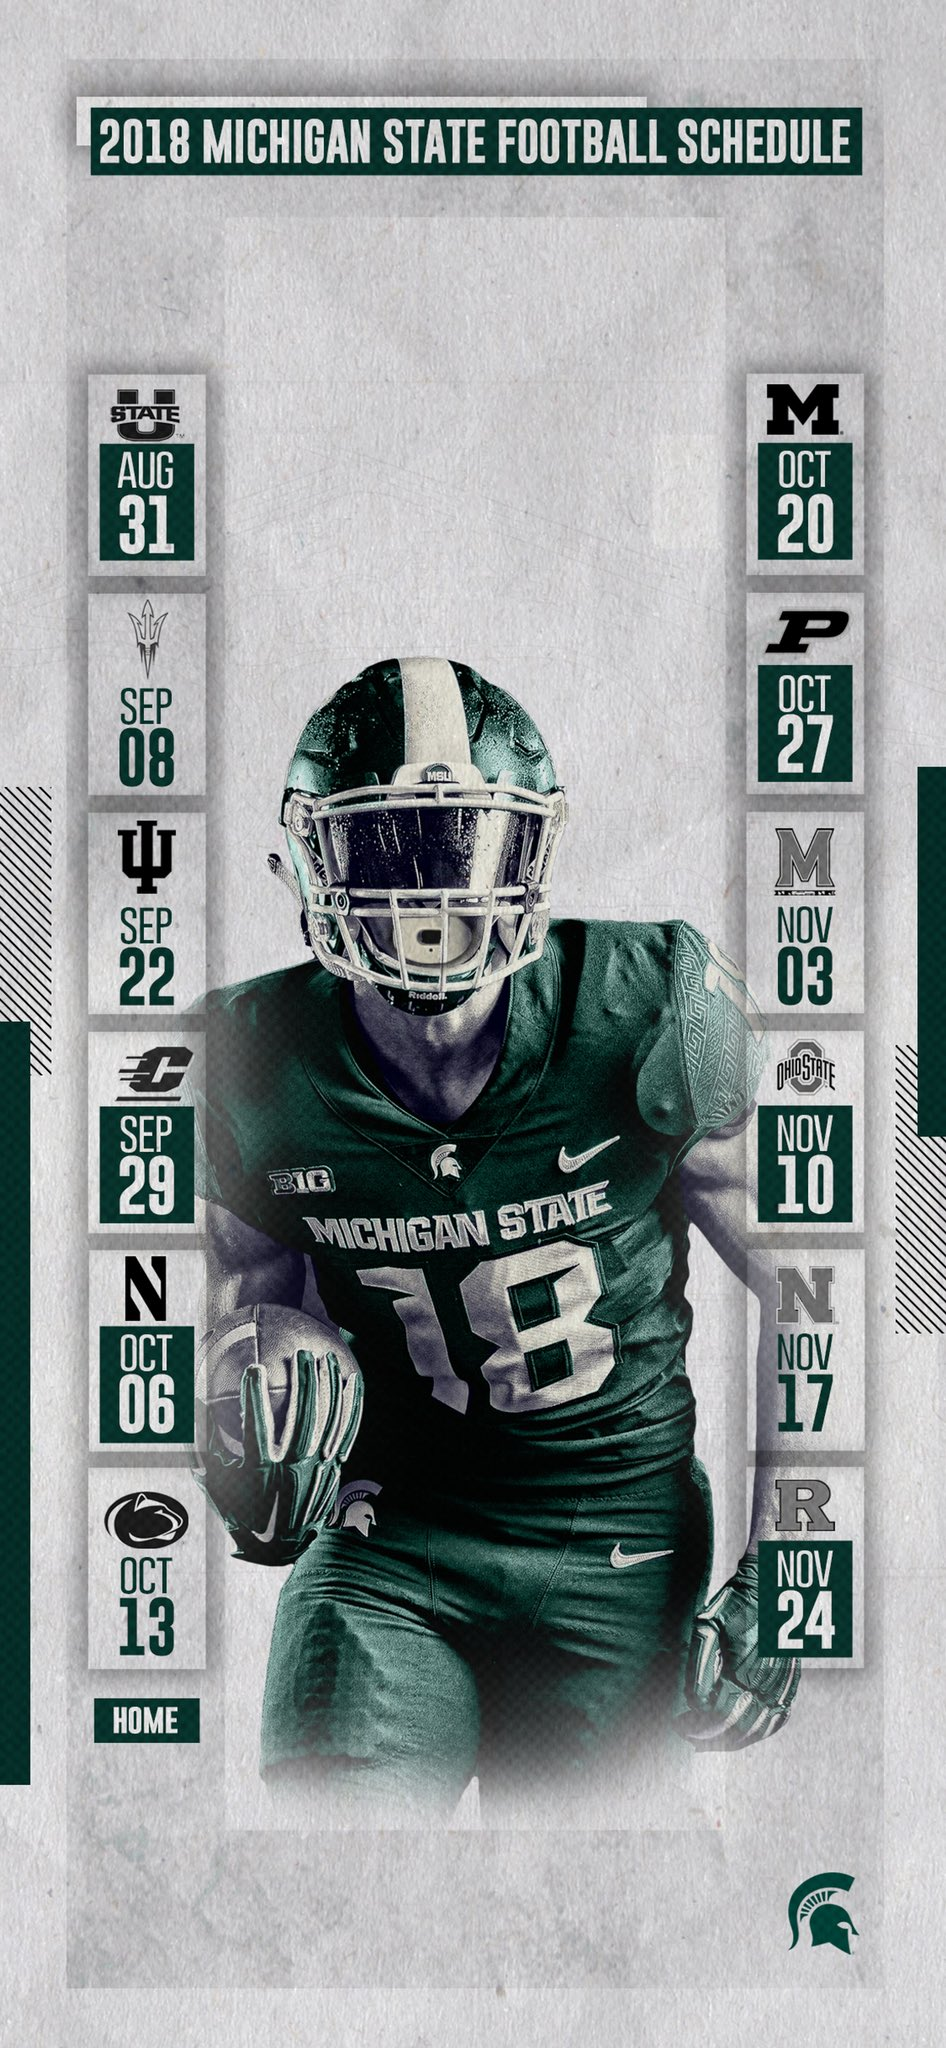 Michigan state football on twitter 2018 football schedule lock screen wallpapers for the - Michigan state football backgrounds ...